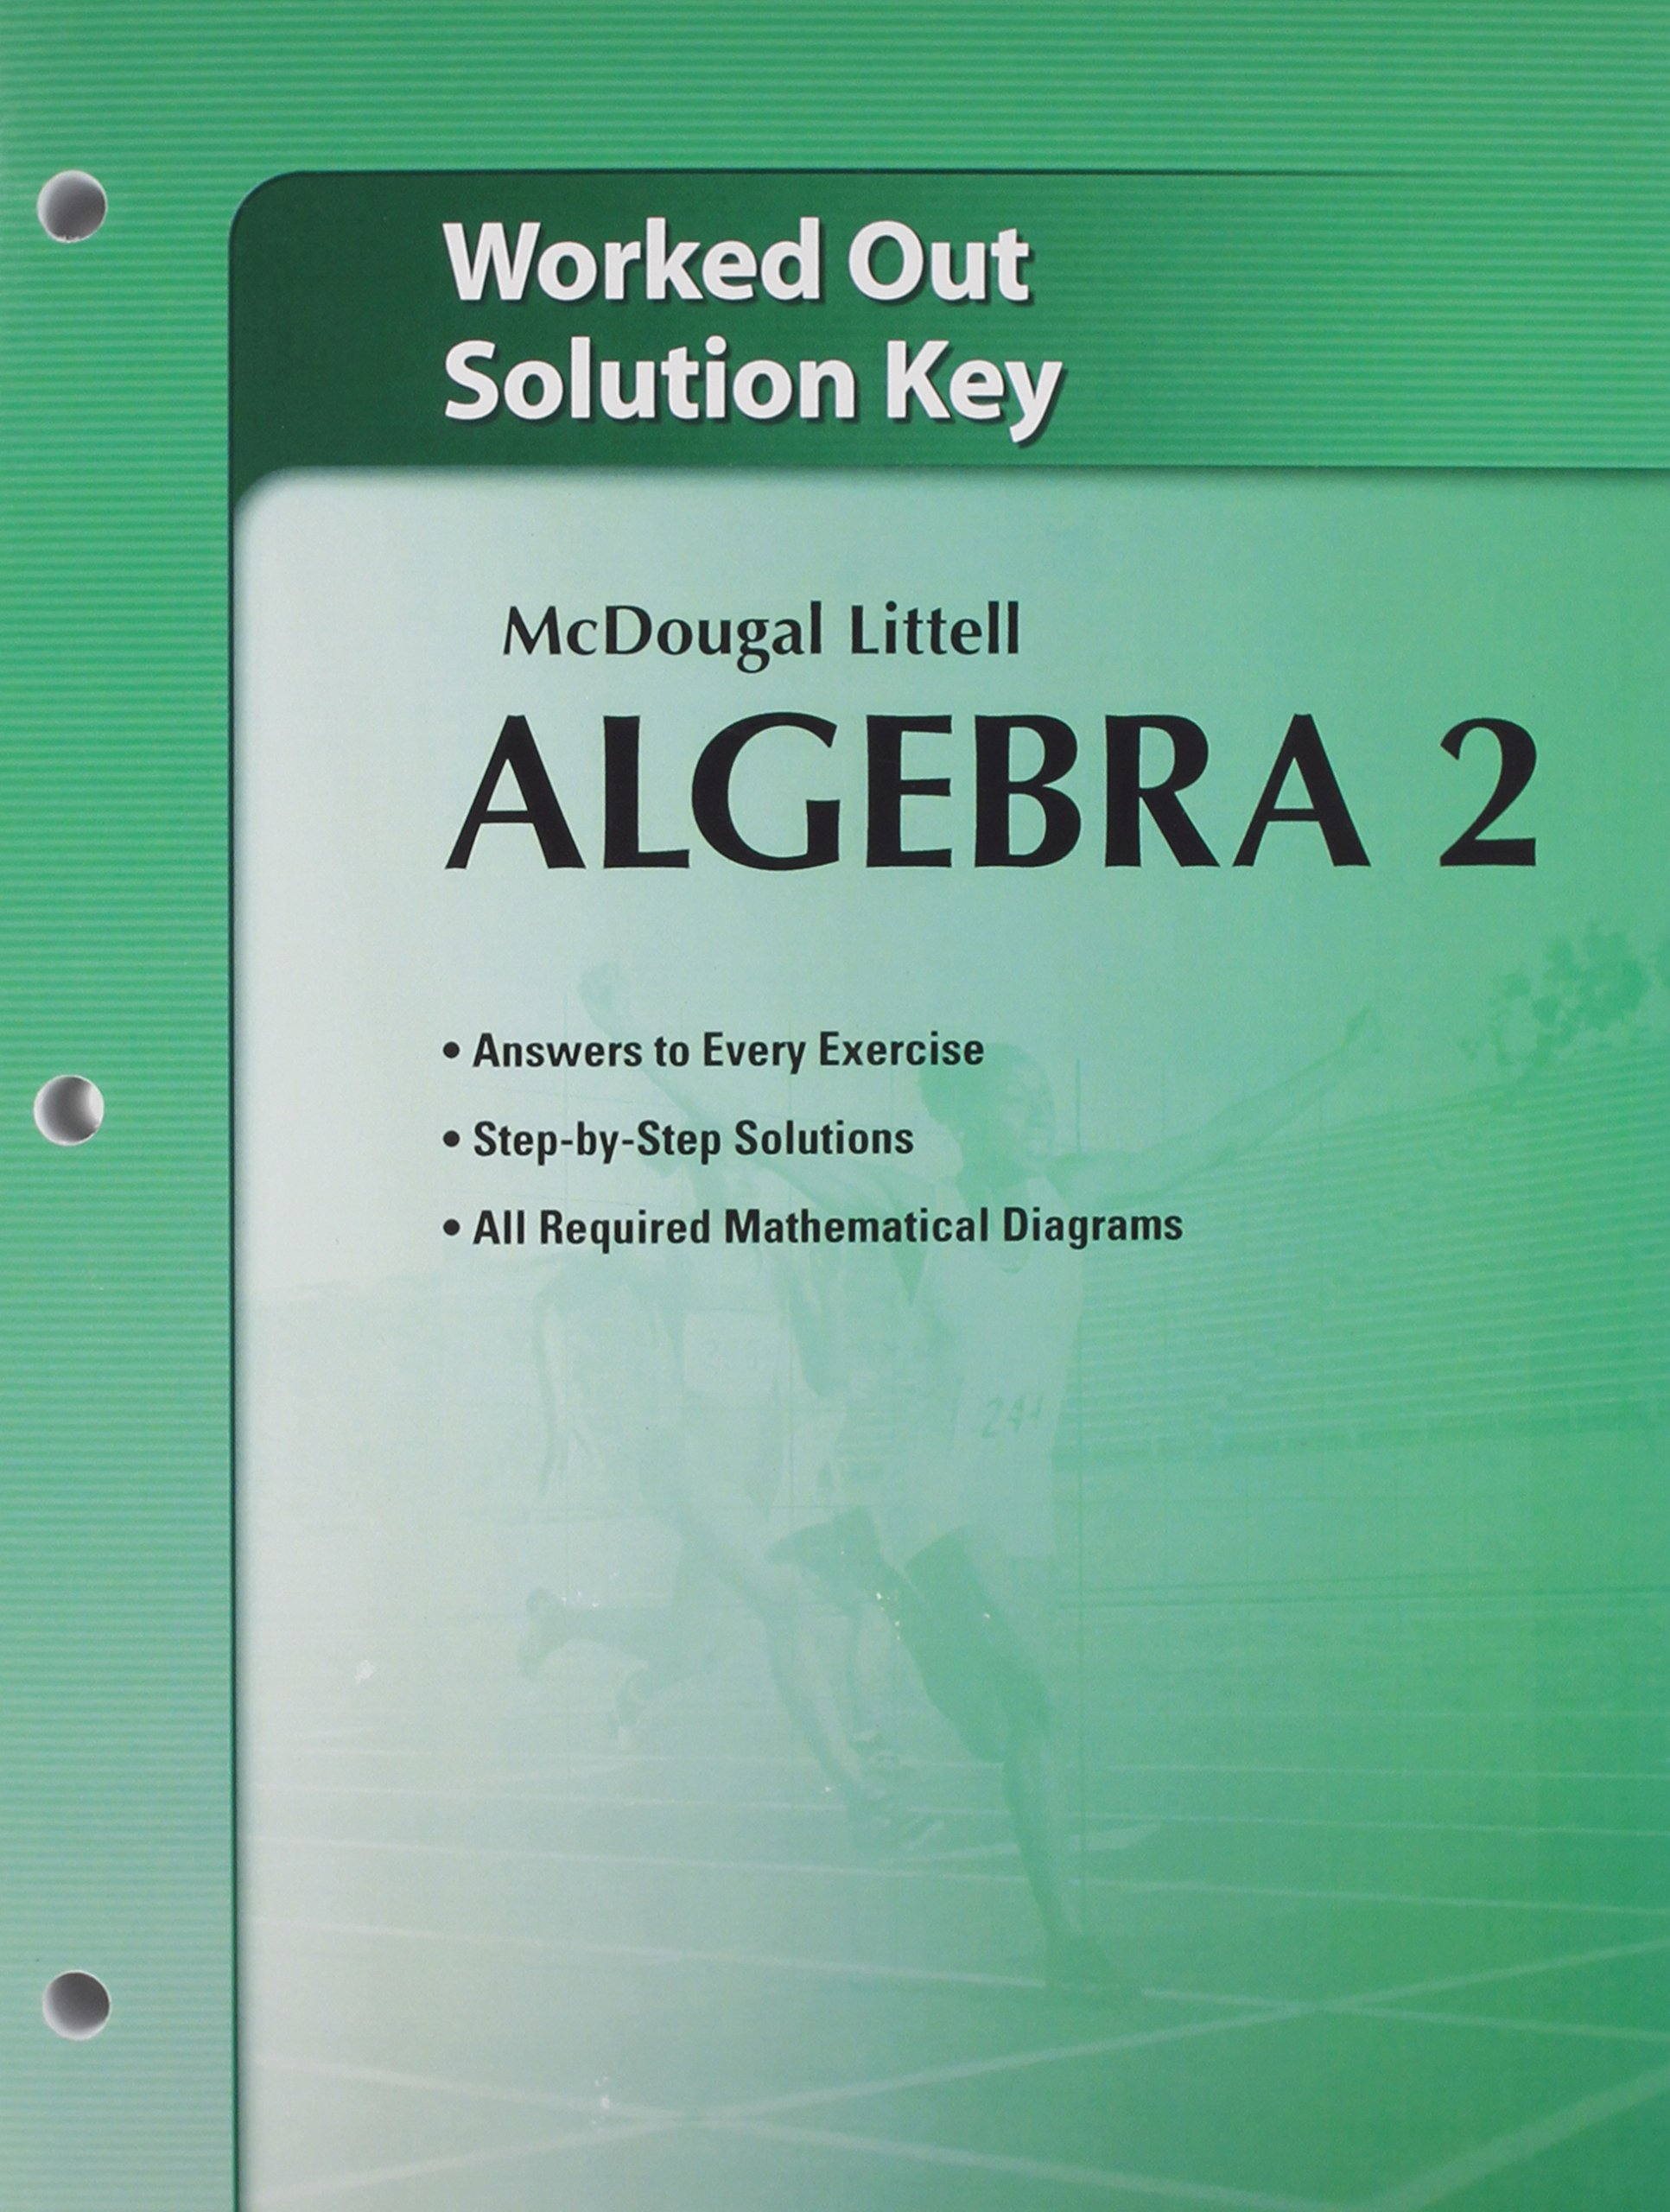 Worksheets Holt Mcdougal Algebra 2 Worksheet Answers amazon com holt mcdougal larson algebra 2 worked out solutions key 9780618736652 littel books